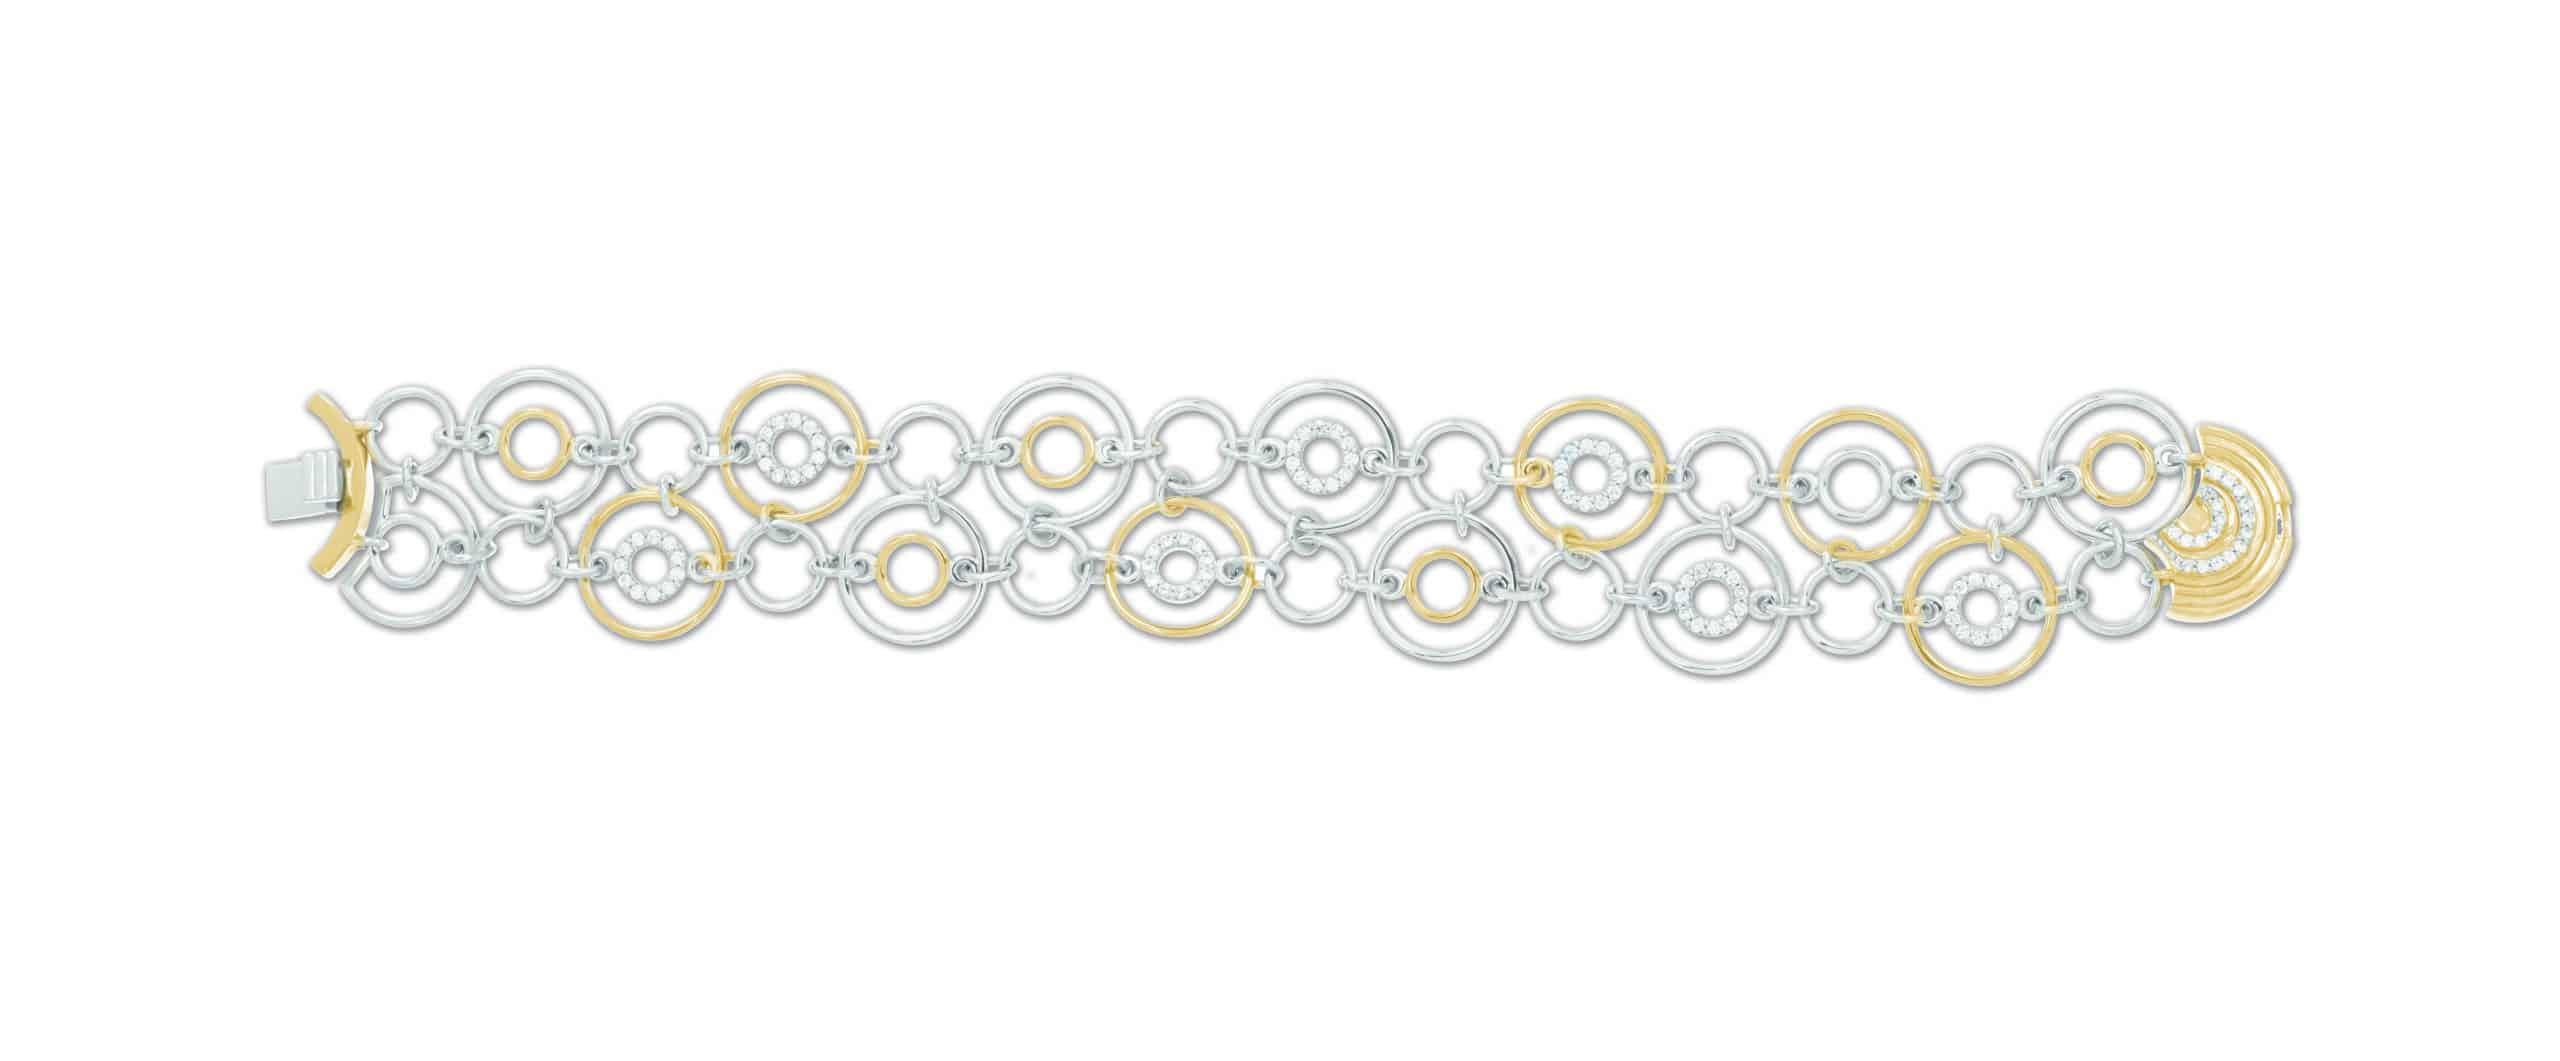 Belle Étoile Concentra White and Yellow Bracelet